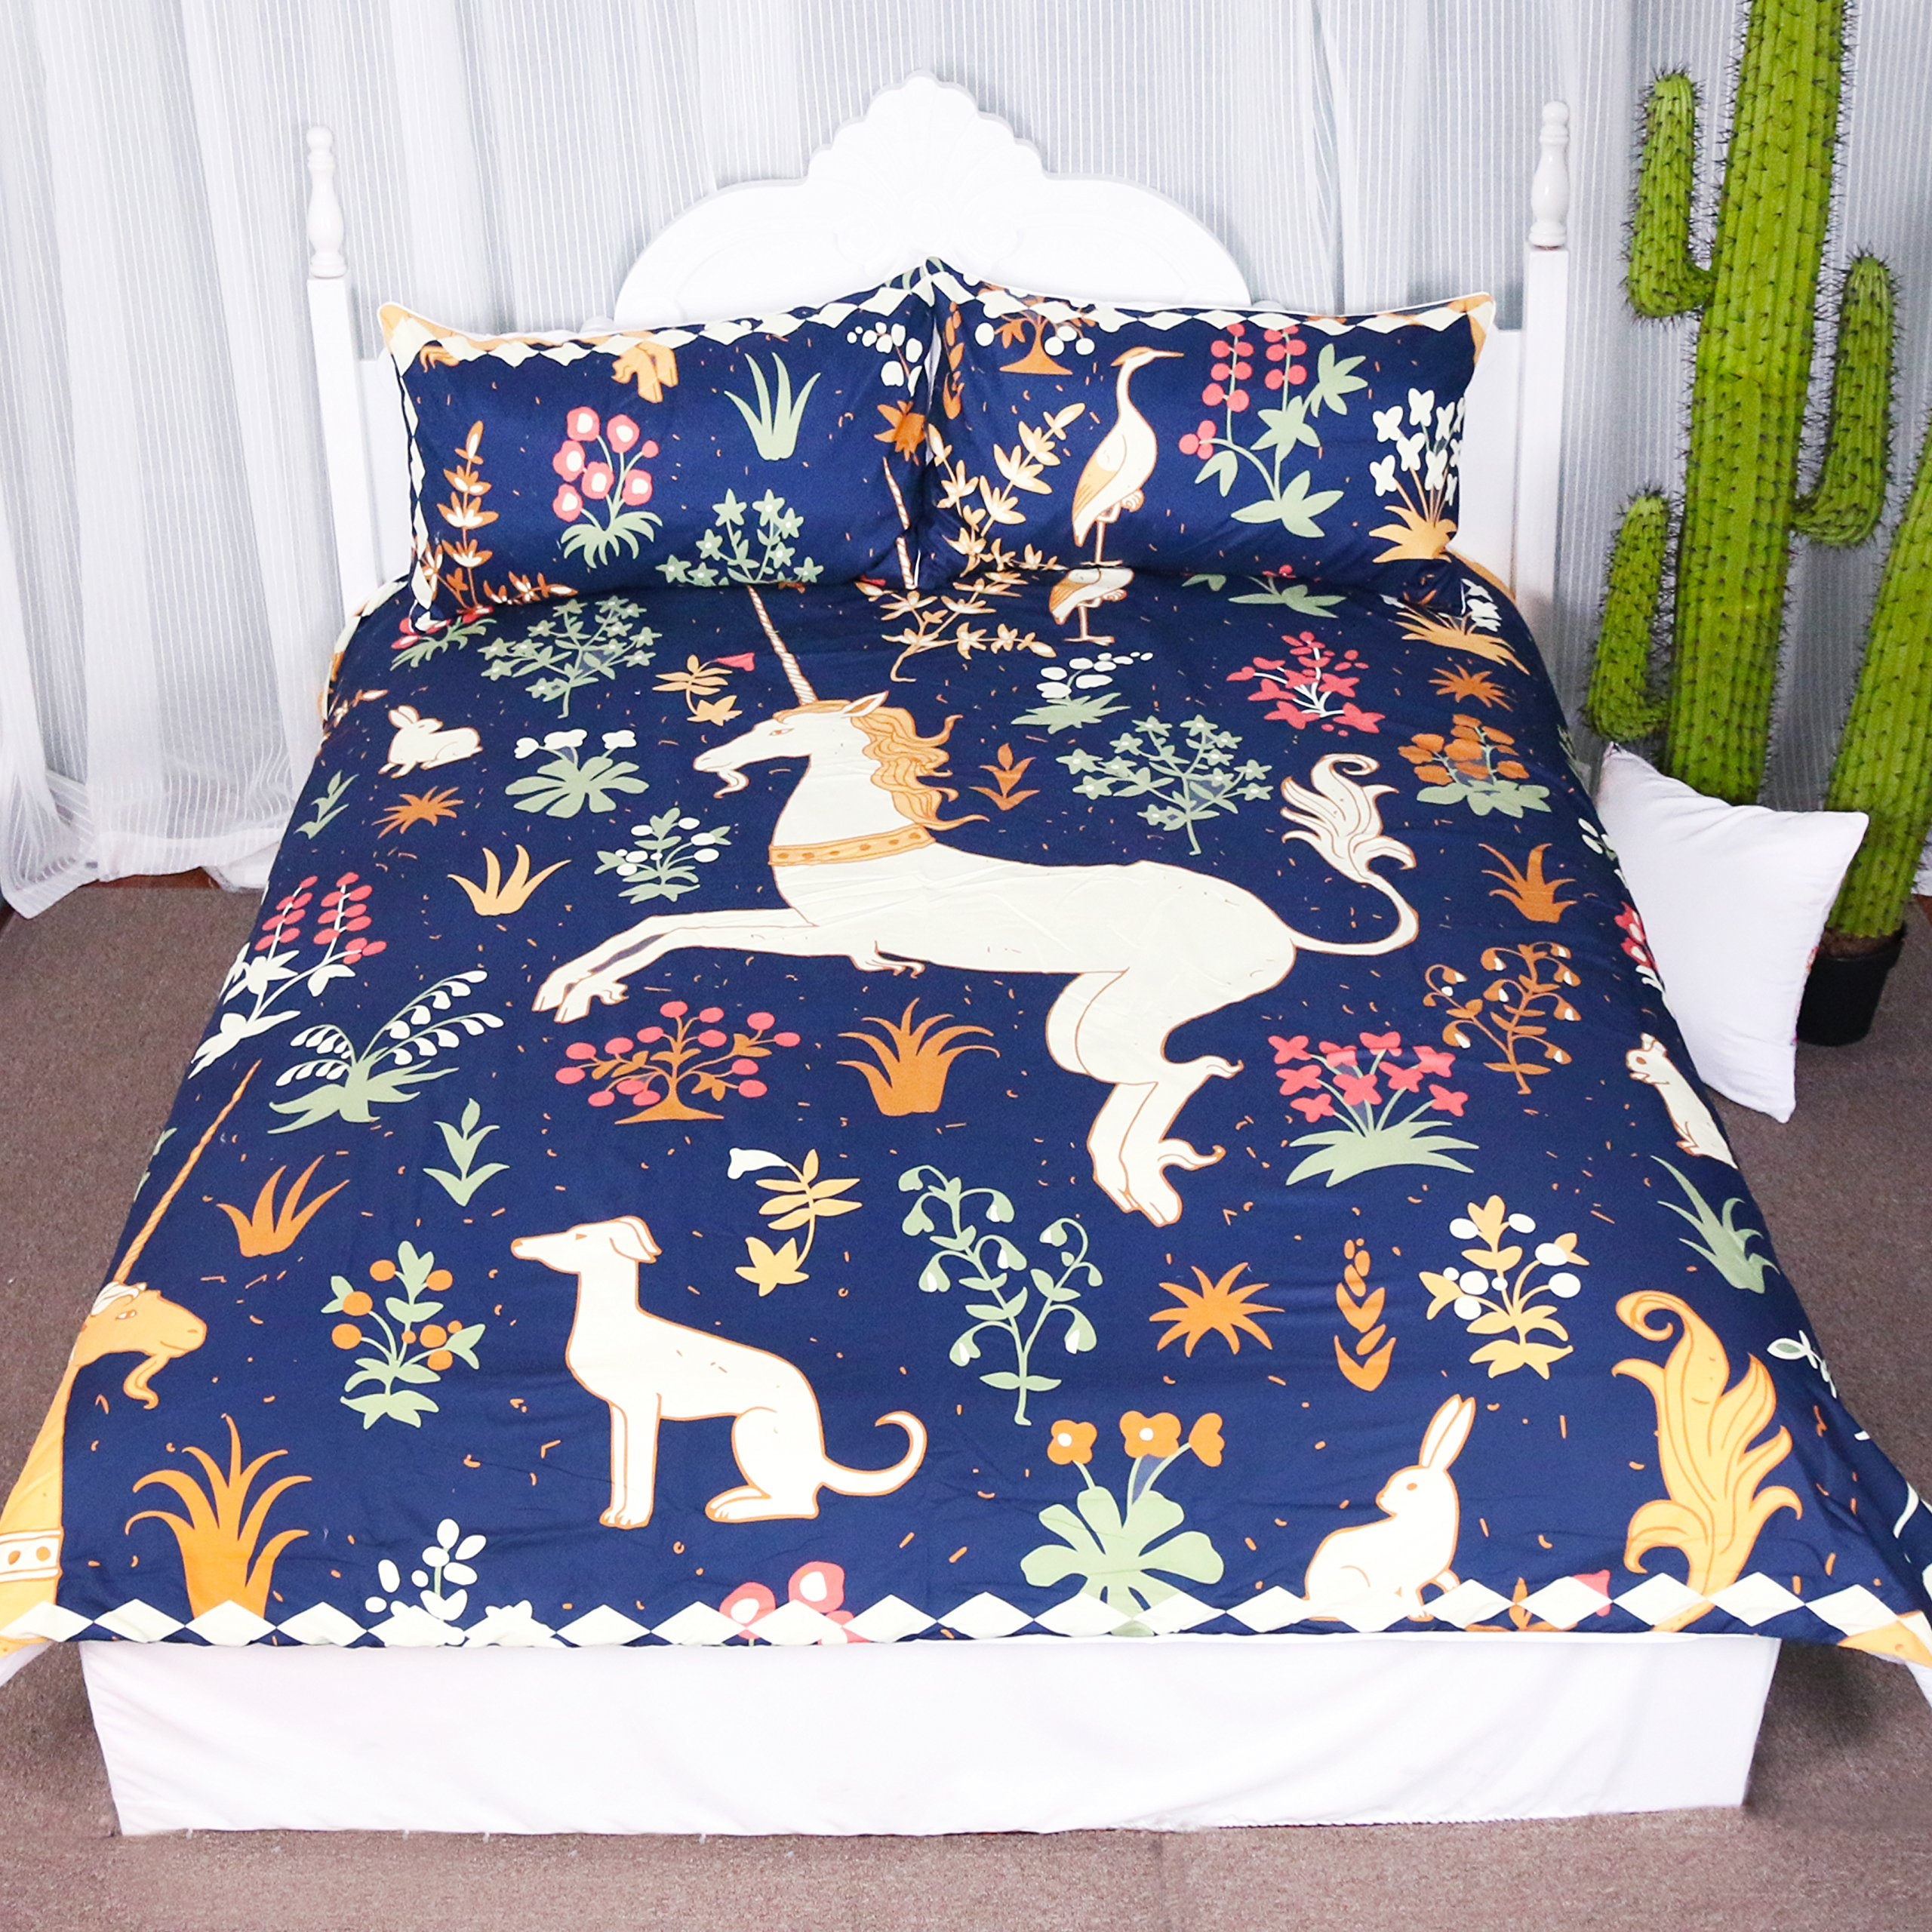 Fantasy Prancing Unicorn Dancing in Flowers Duvet Cover Set 3 Pieces Cute Animals Graphic Design Bedspread Bedding Set (Queen) by ARIGHTEX